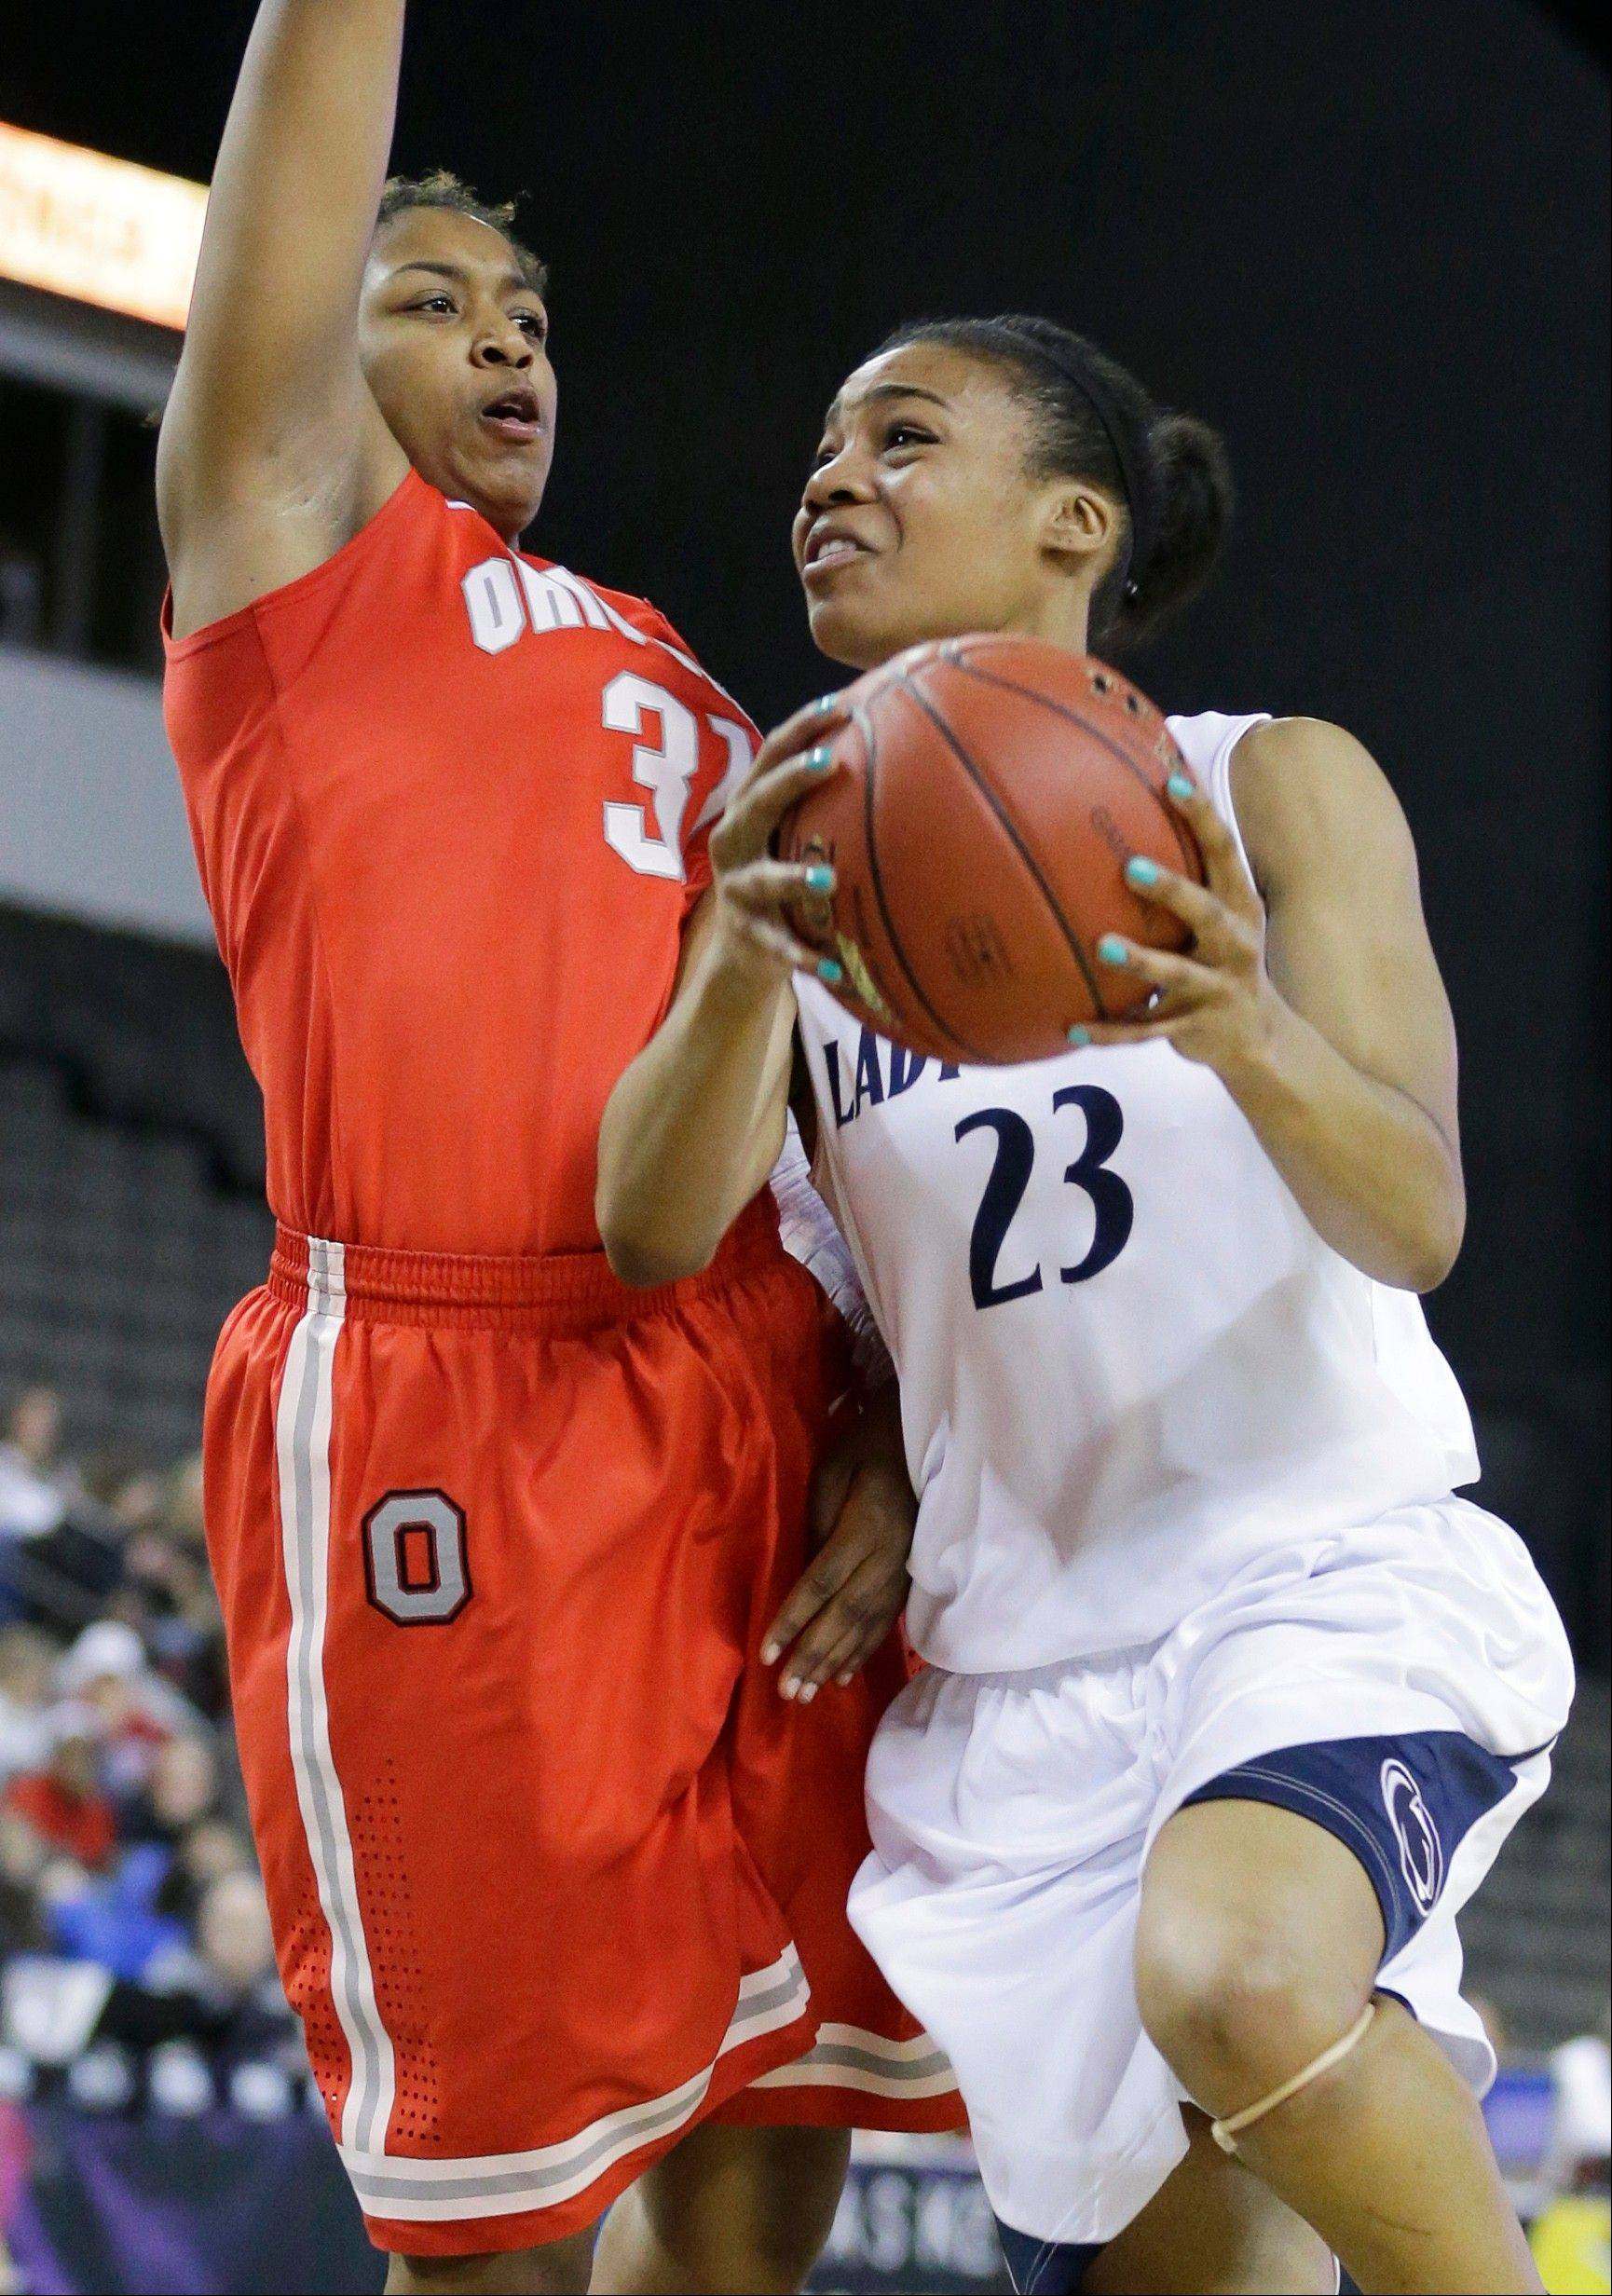 Penn State forward Ariel Edwards, right, drives to the basket against Ohio State guard Raven Ferguson during the second half of an NCAA women's college basketball game in the Big Ten Conference tournament in Hoffman Estates, Ill., on Friday, March 8, 2013. Penn State won 76-66.